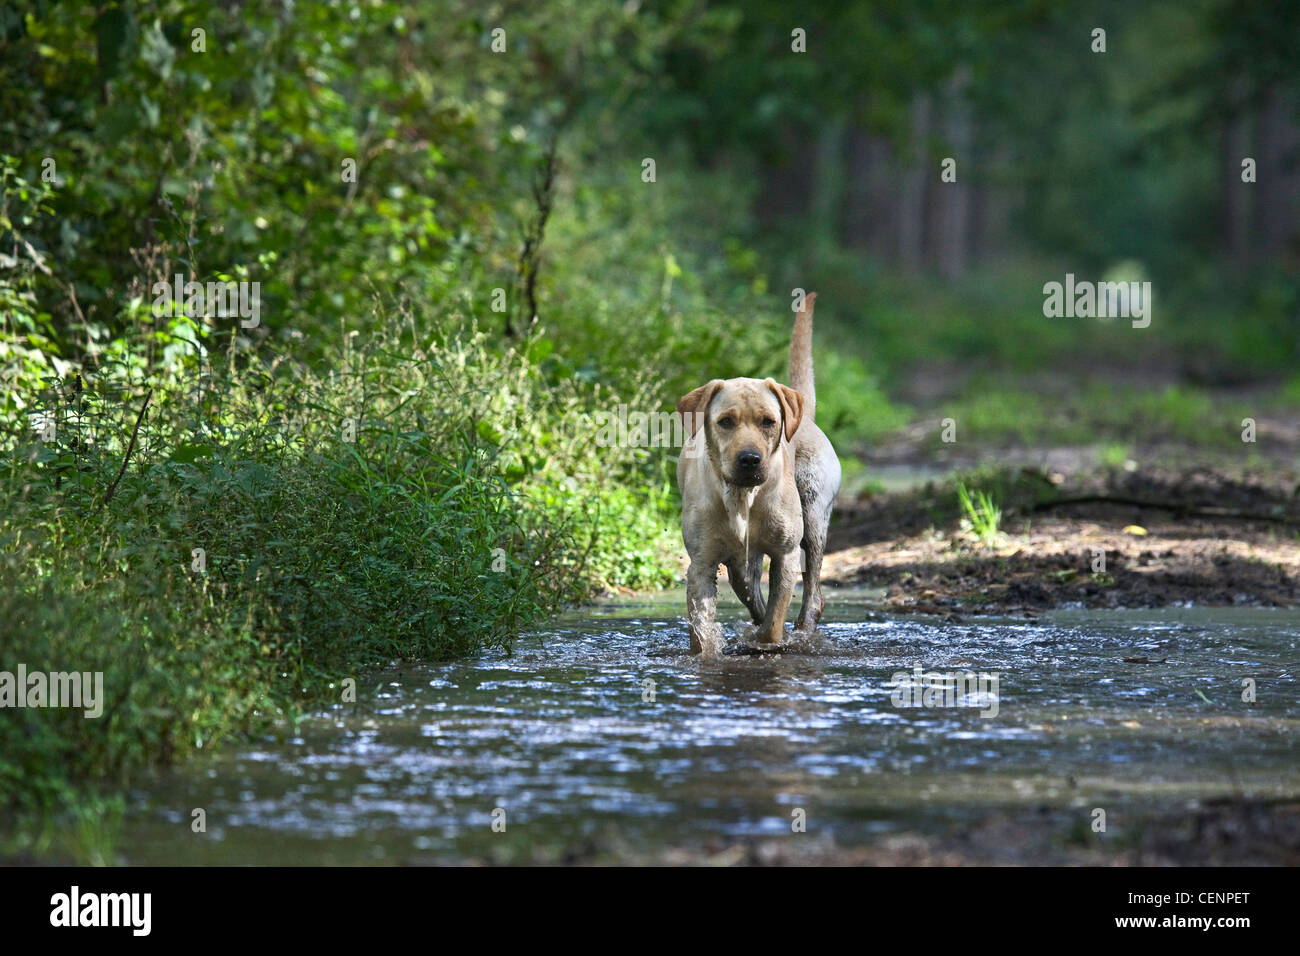 Labrador dog walking through water of muddy puddle on footpath in forest, Belgium - Stock Image